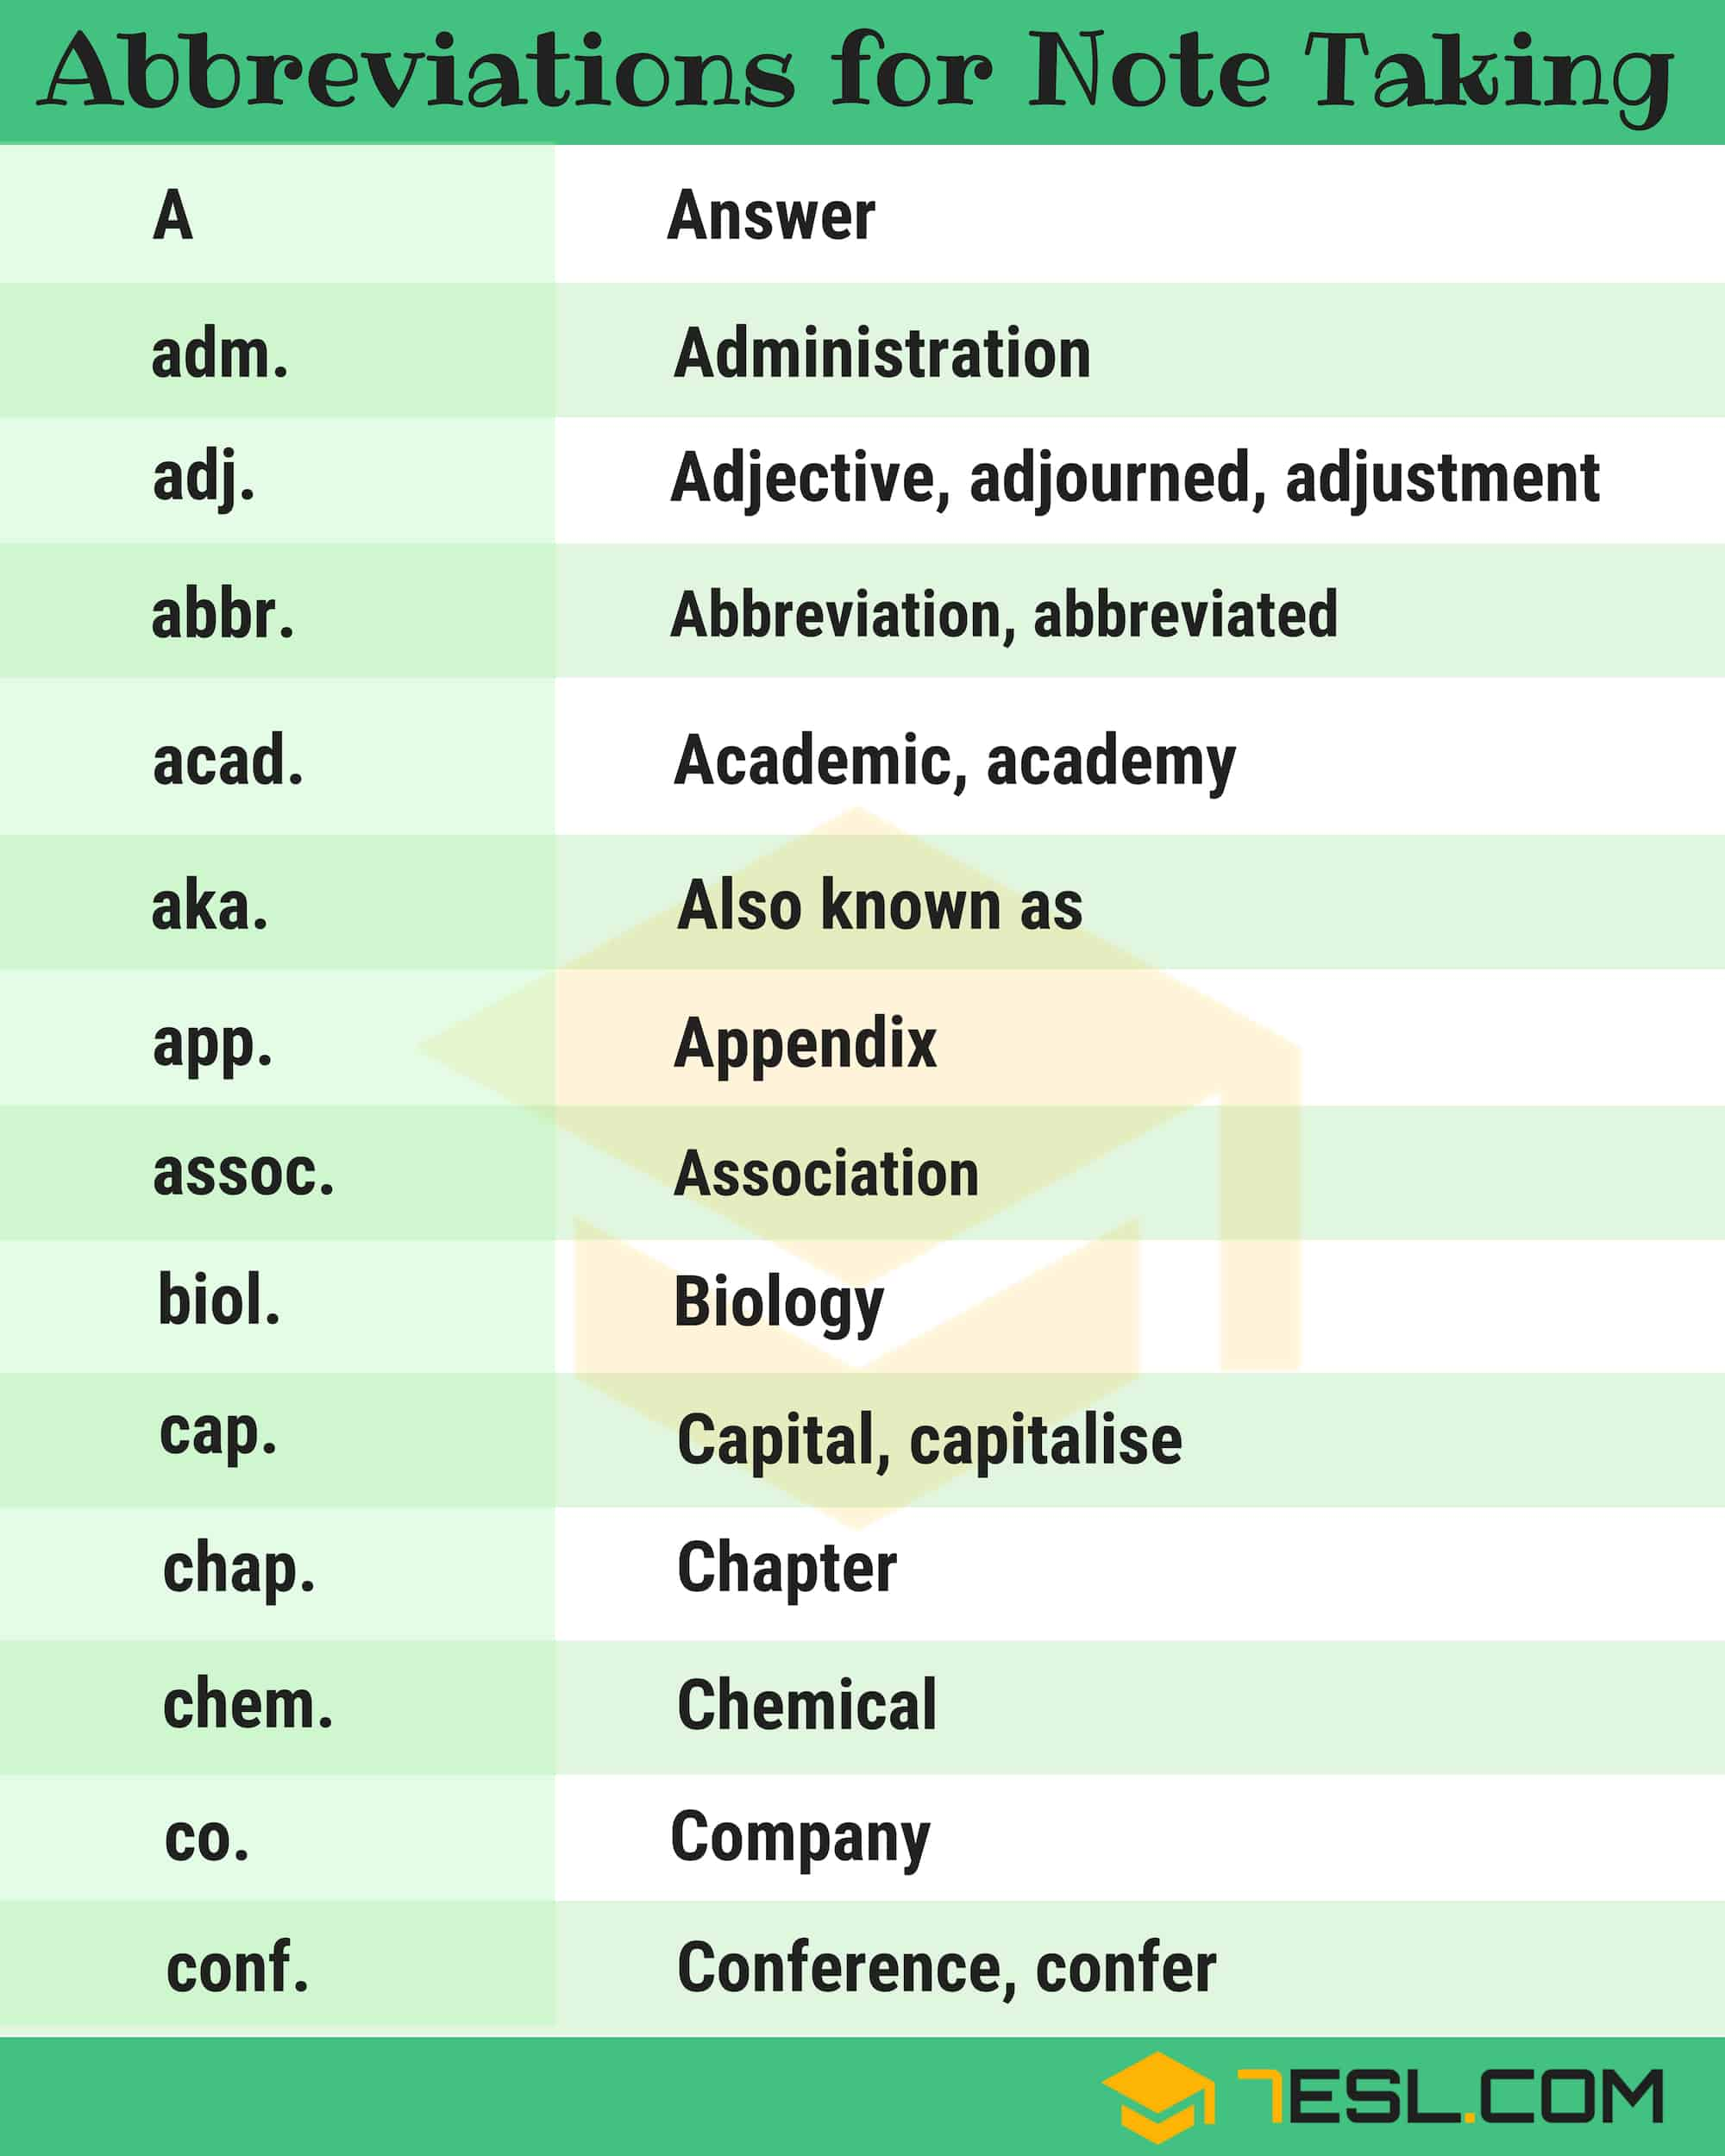 Abbreviations for Note Taking